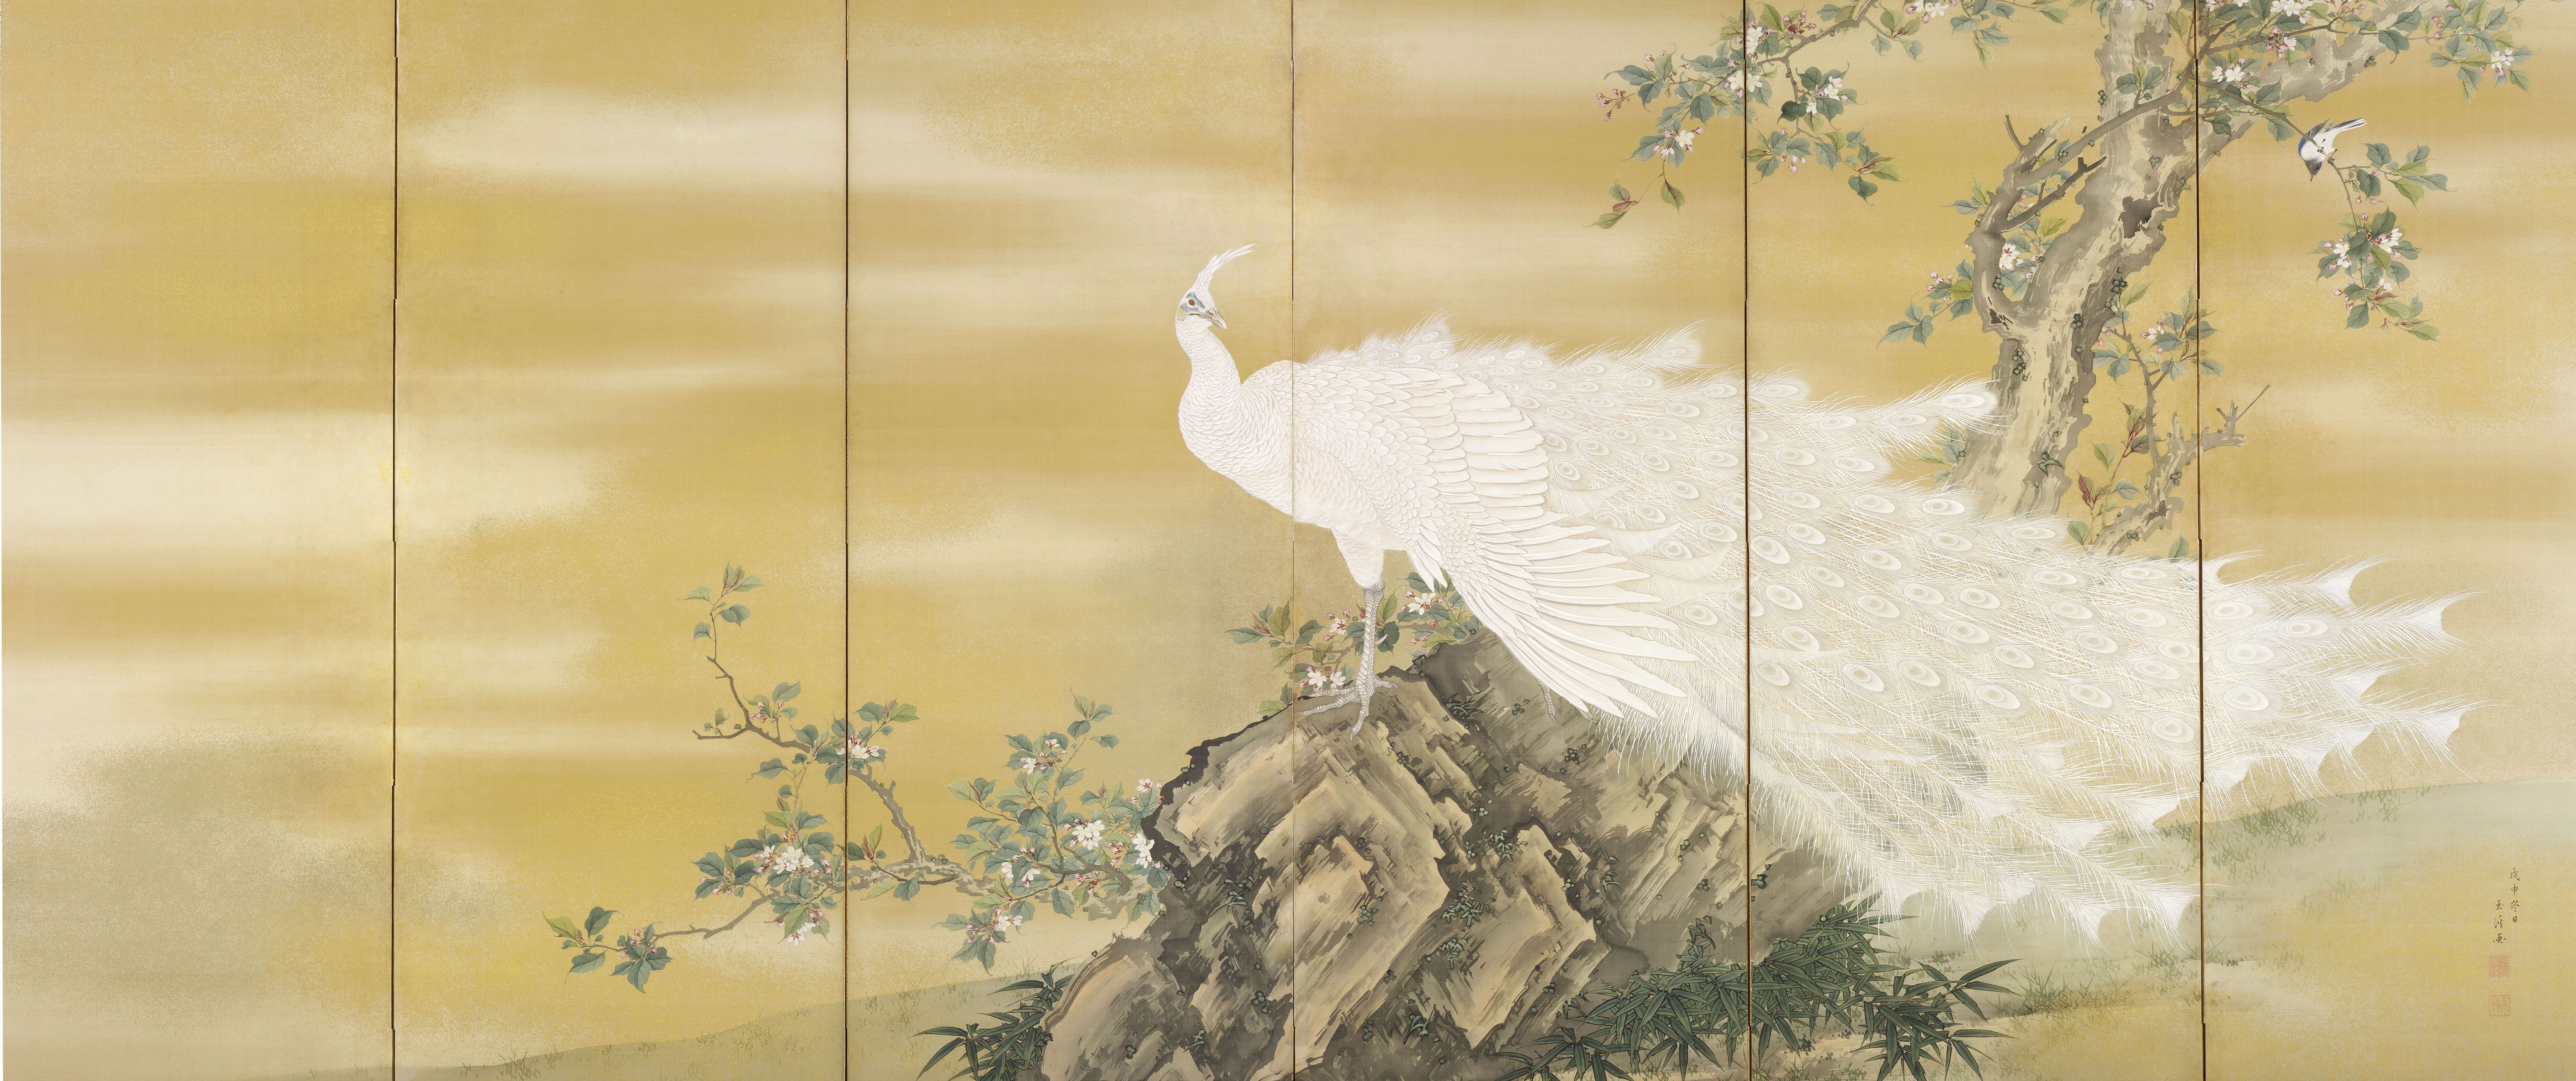 Color in japanese art - Modern Japanese Art Google Search